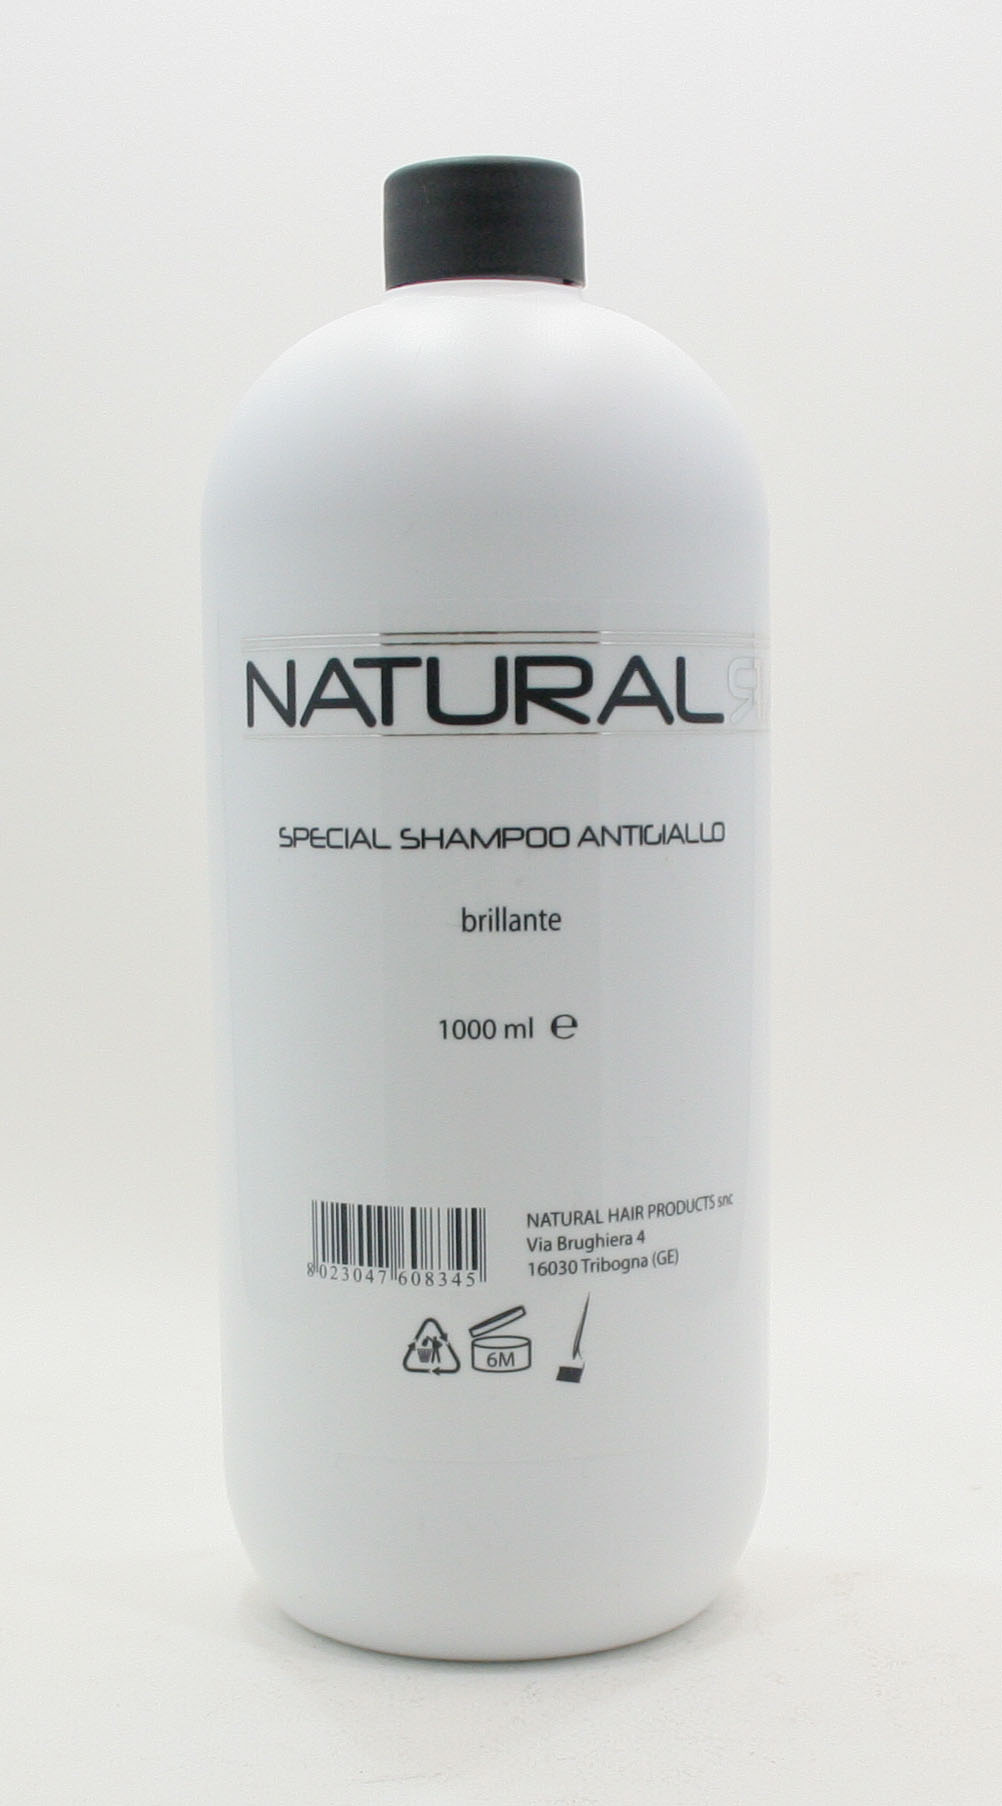 NATURAL HAIR SPECIAL SHAMPOO ANTIGIALLO BRILLANTE 1000 ml